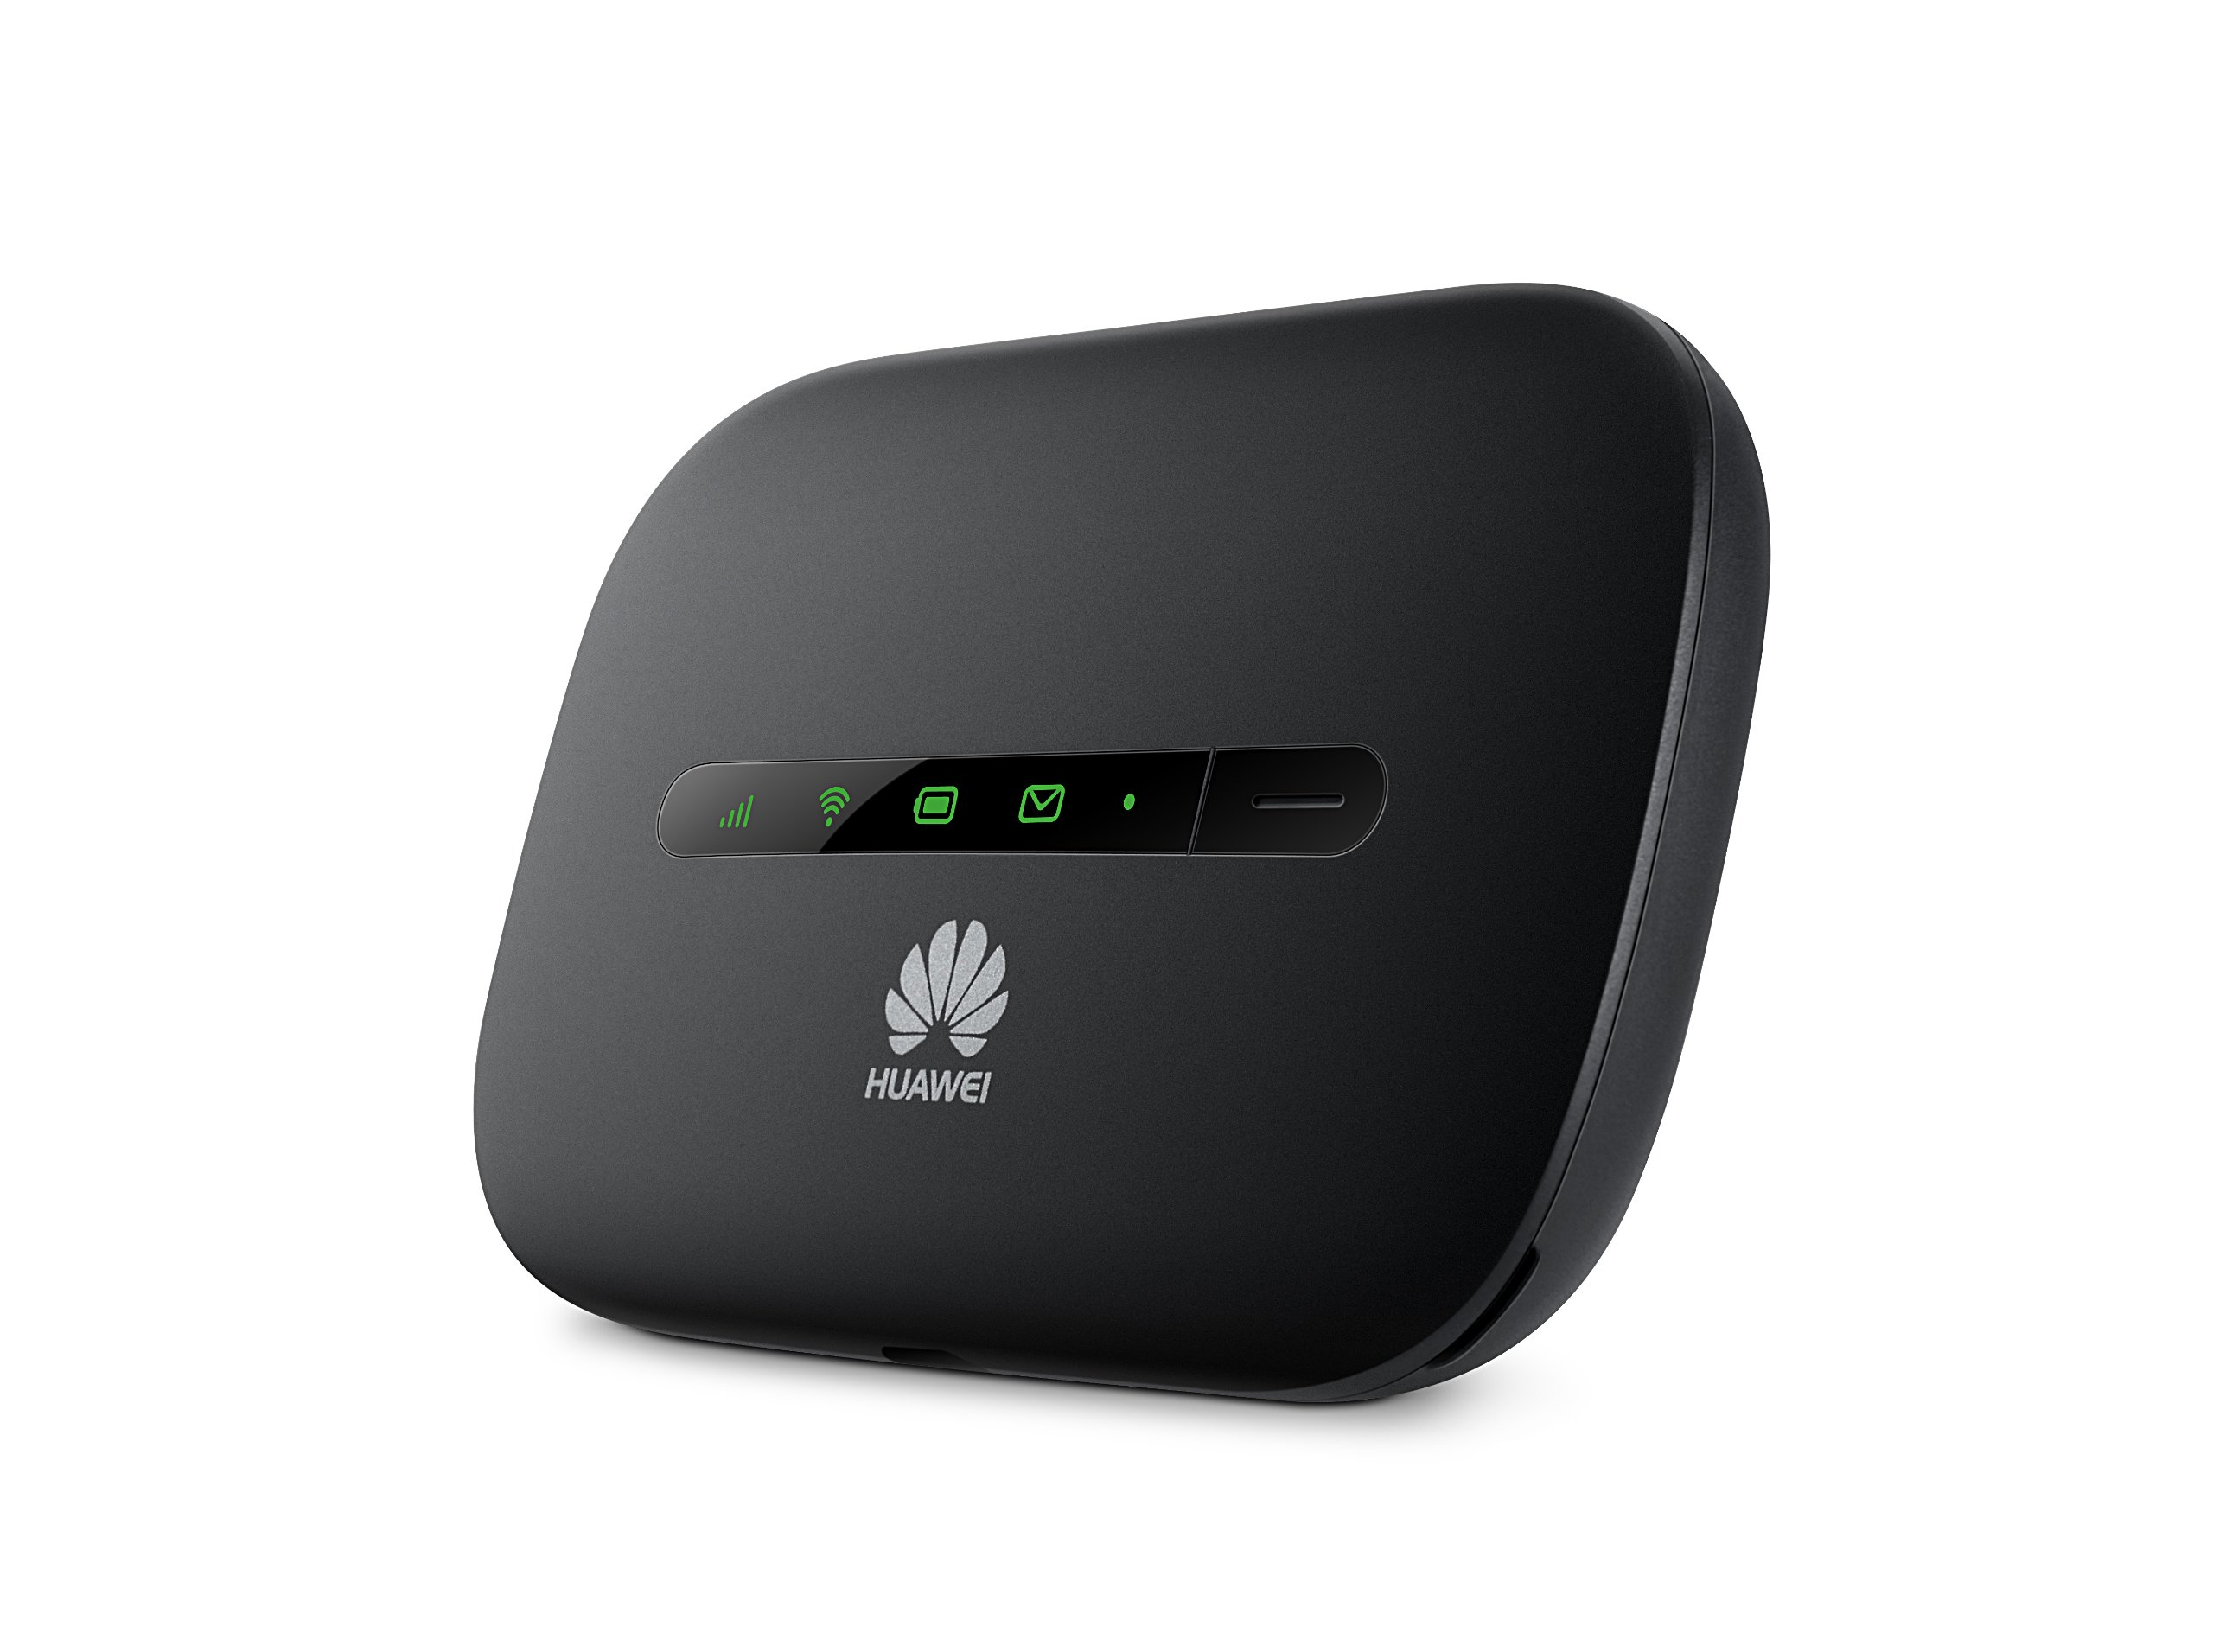 Huawei E5330Bs-2 21 Mbps 3G Mobile WiFi Hotspot (3G in Europe, Asia, Middle East & Africa) (black) by Huawei (Image #2)